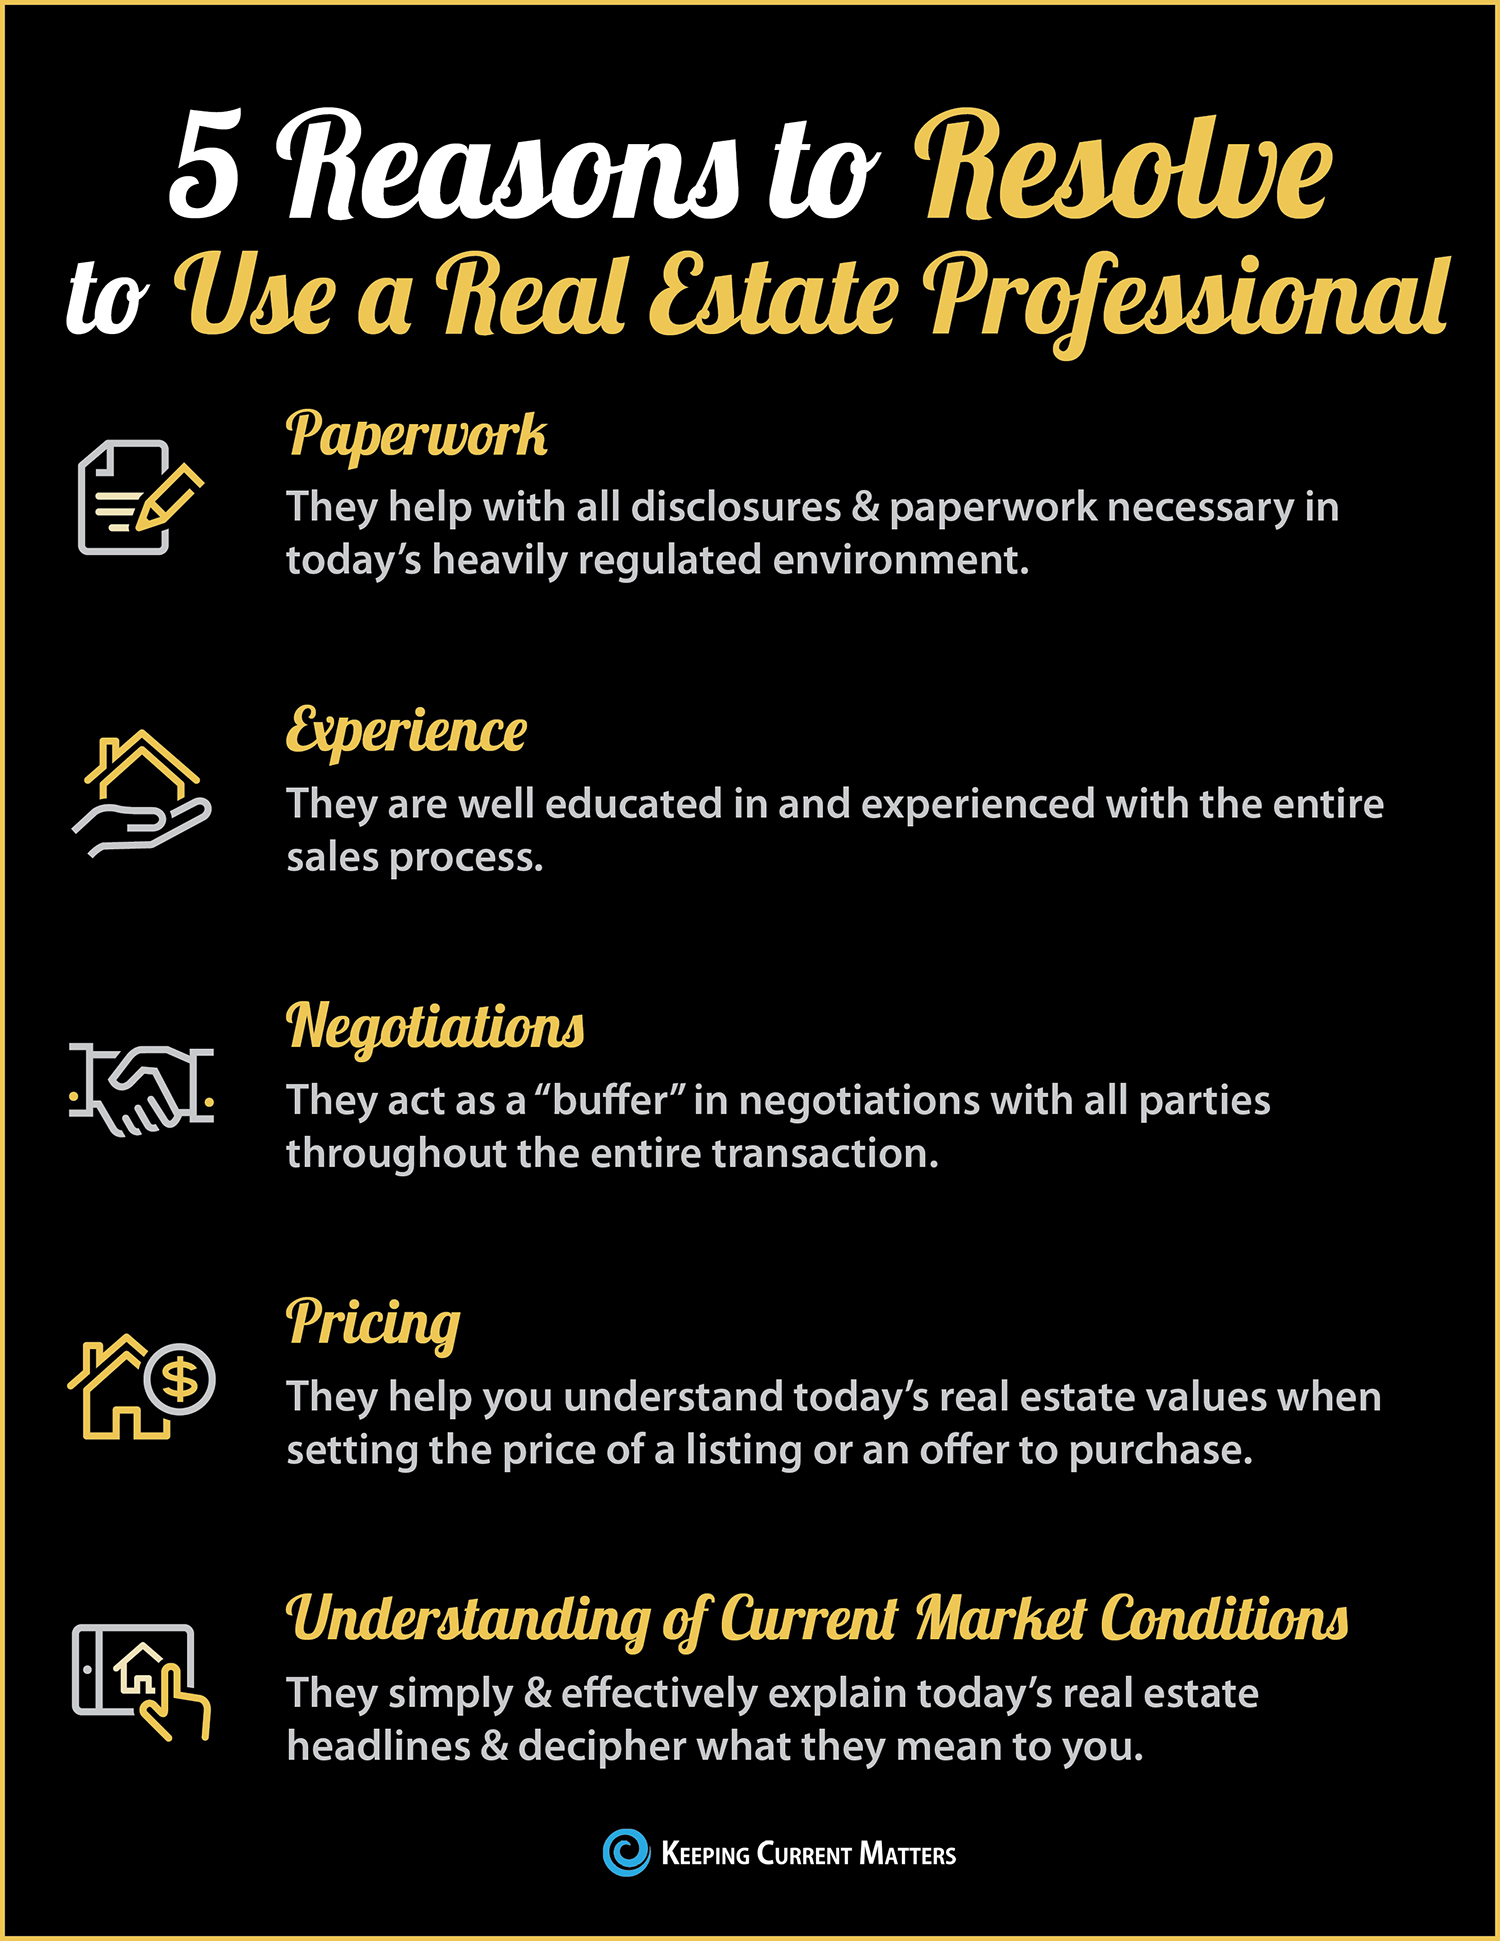 5 Reasons to Resolve to Hire a Real Estate Professional [INFOGRAPHIC] | Keeping Current Matters